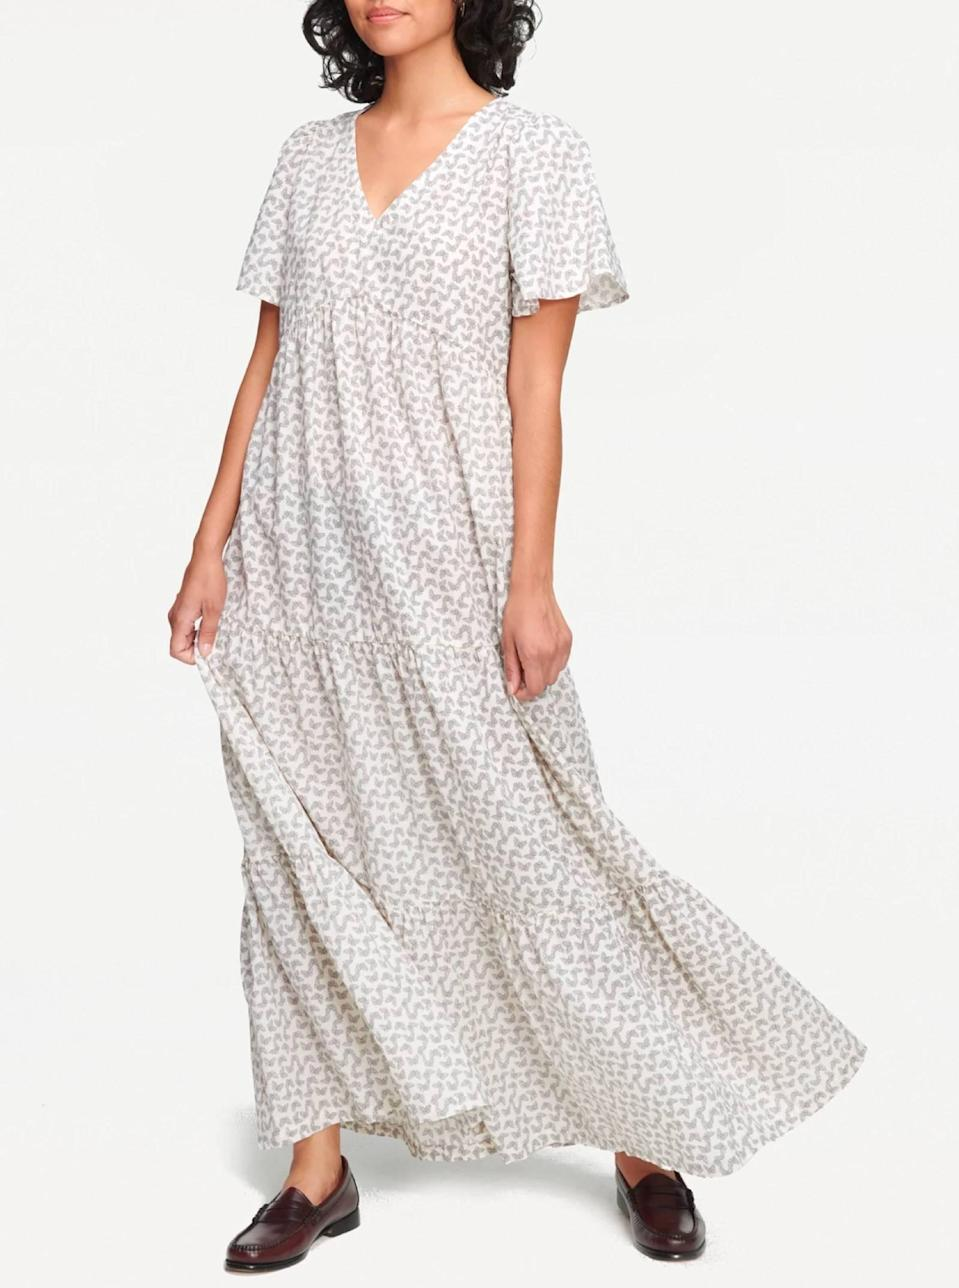 """Catch us napping, frolicking, and selfie-ing all summer long in this flawless maxi dress from Lacausa. $160, Lacausa. <a href=""""https://www.lacausaclothing.com/collections/dresses/products/juniper-dress-tan"""" rel=""""nofollow noopener"""" target=""""_blank"""" data-ylk=""""slk:Get it now!"""" class=""""link rapid-noclick-resp"""">Get it now!</a>"""